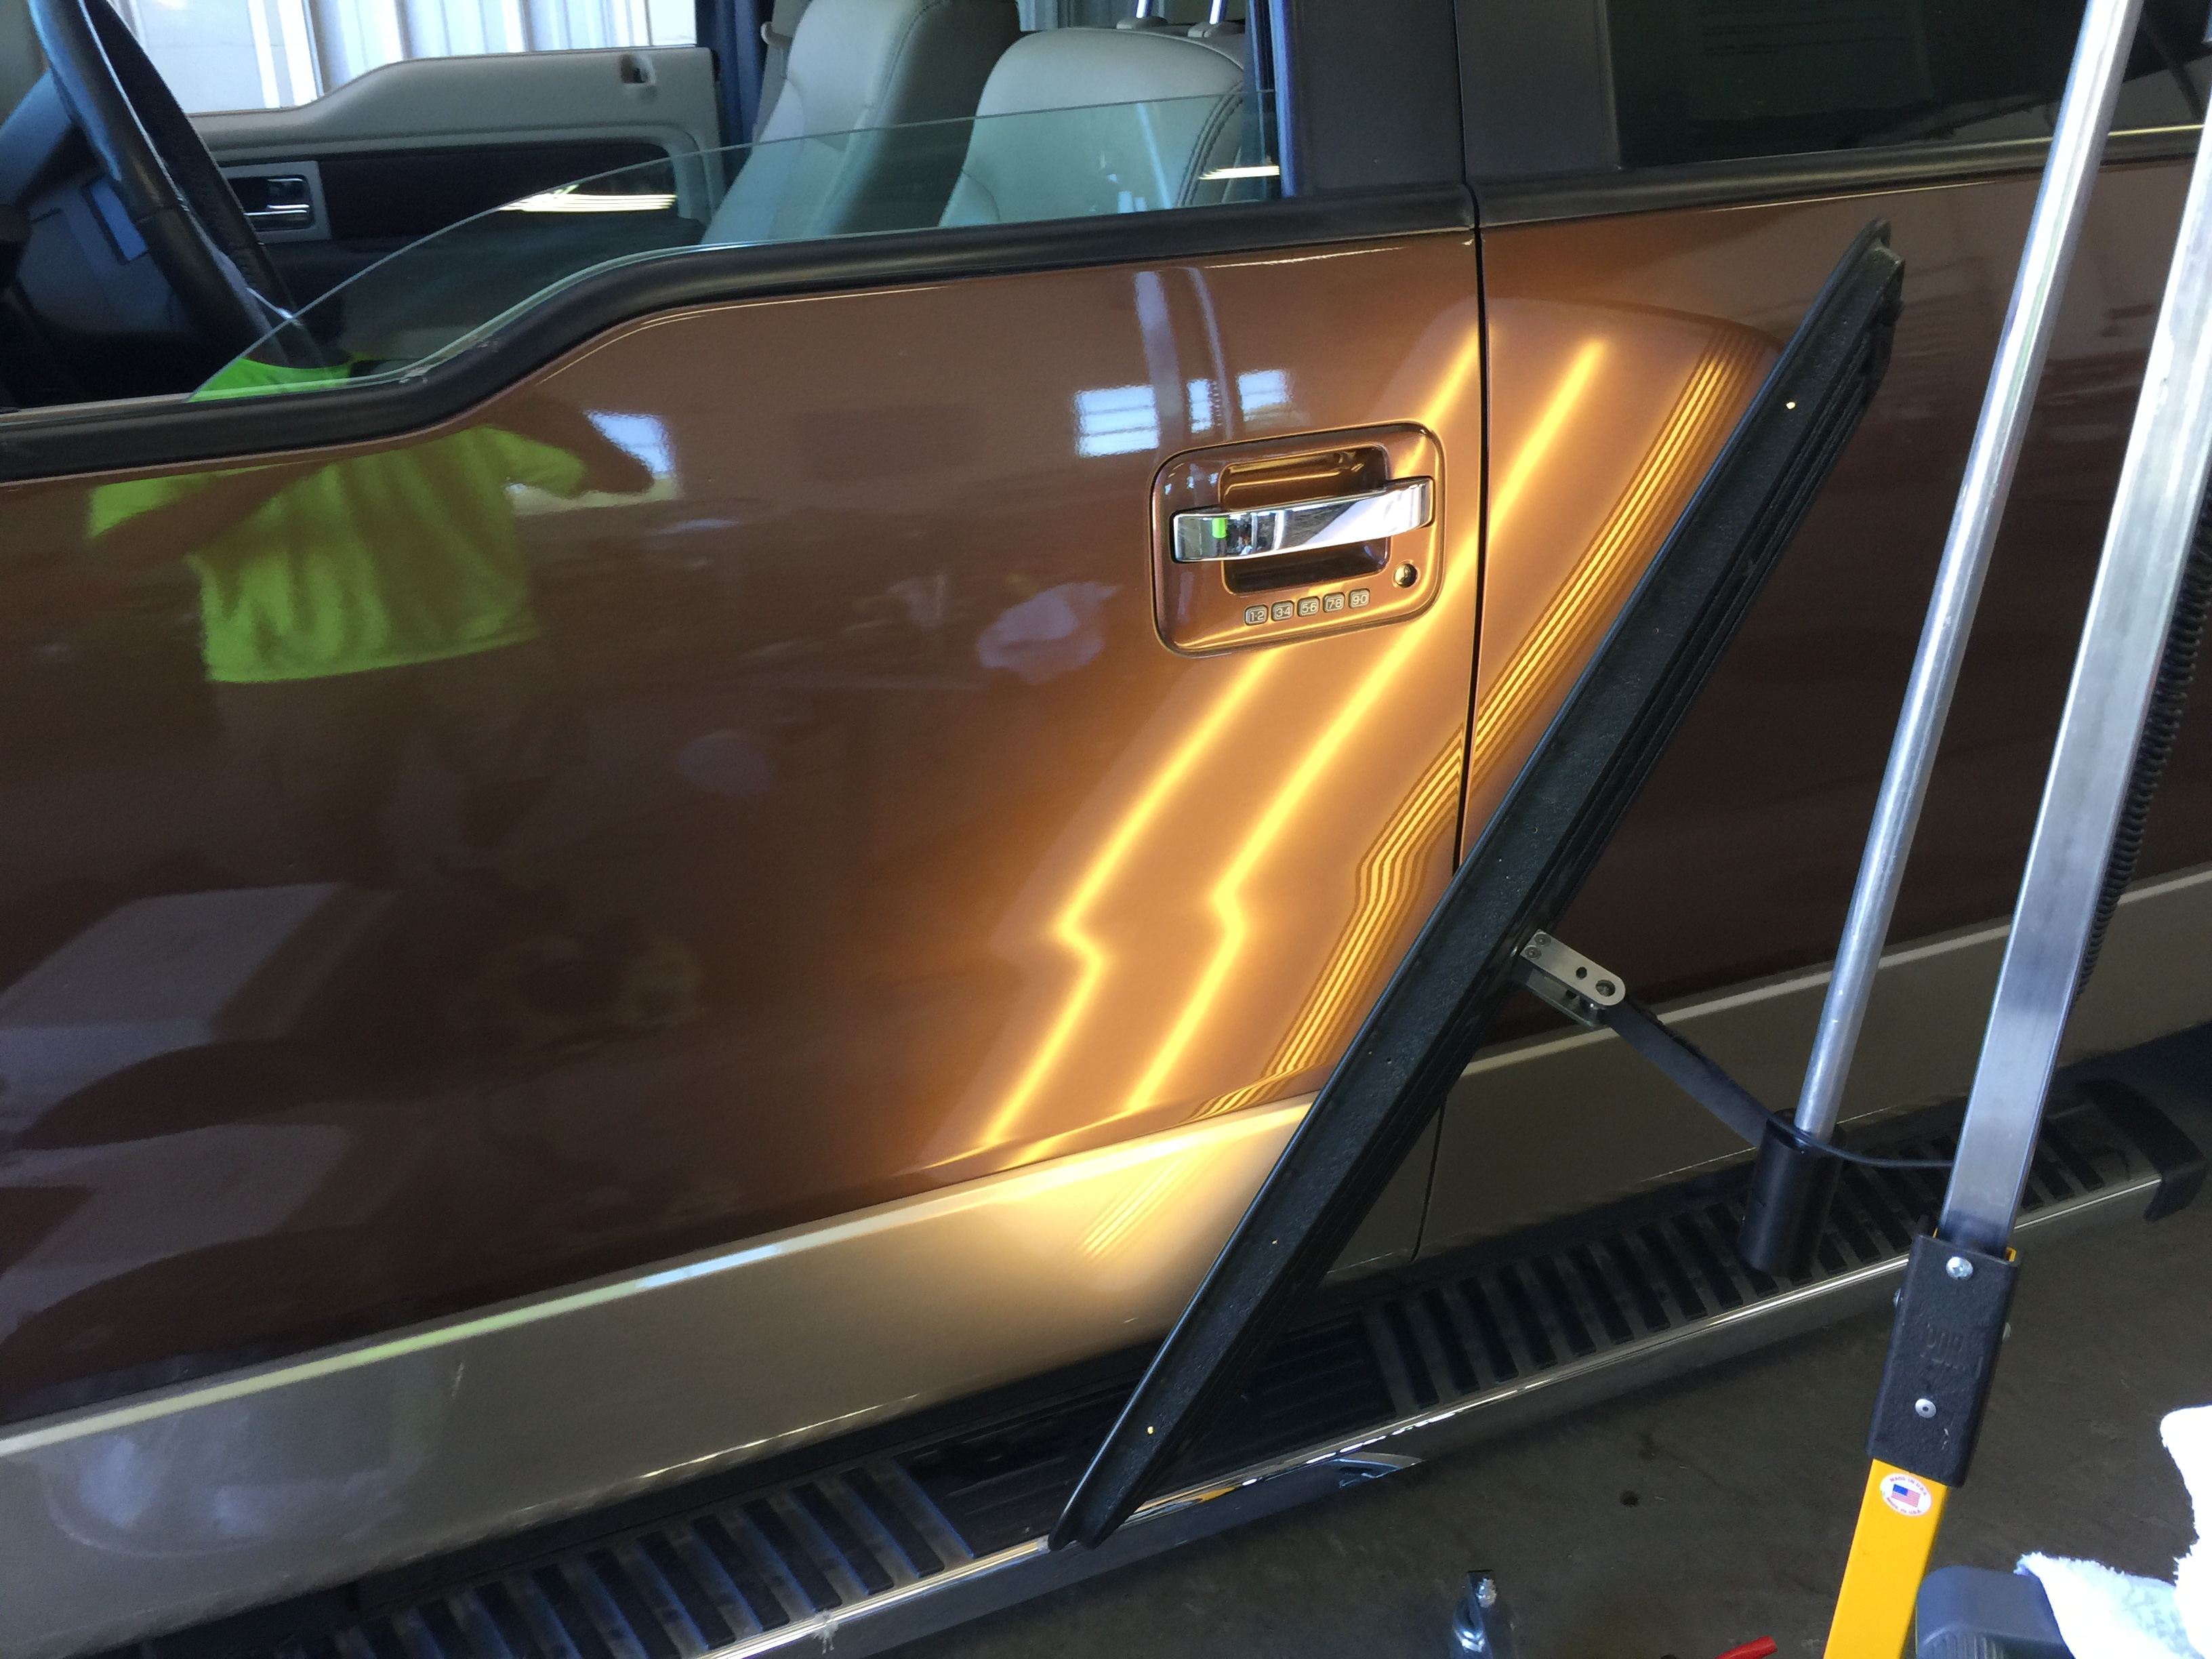 2012 Ford F-150 Dent Removal on drivers door, Springfield IL, paintless dent repair, http://217dent.com Springfield dent repair